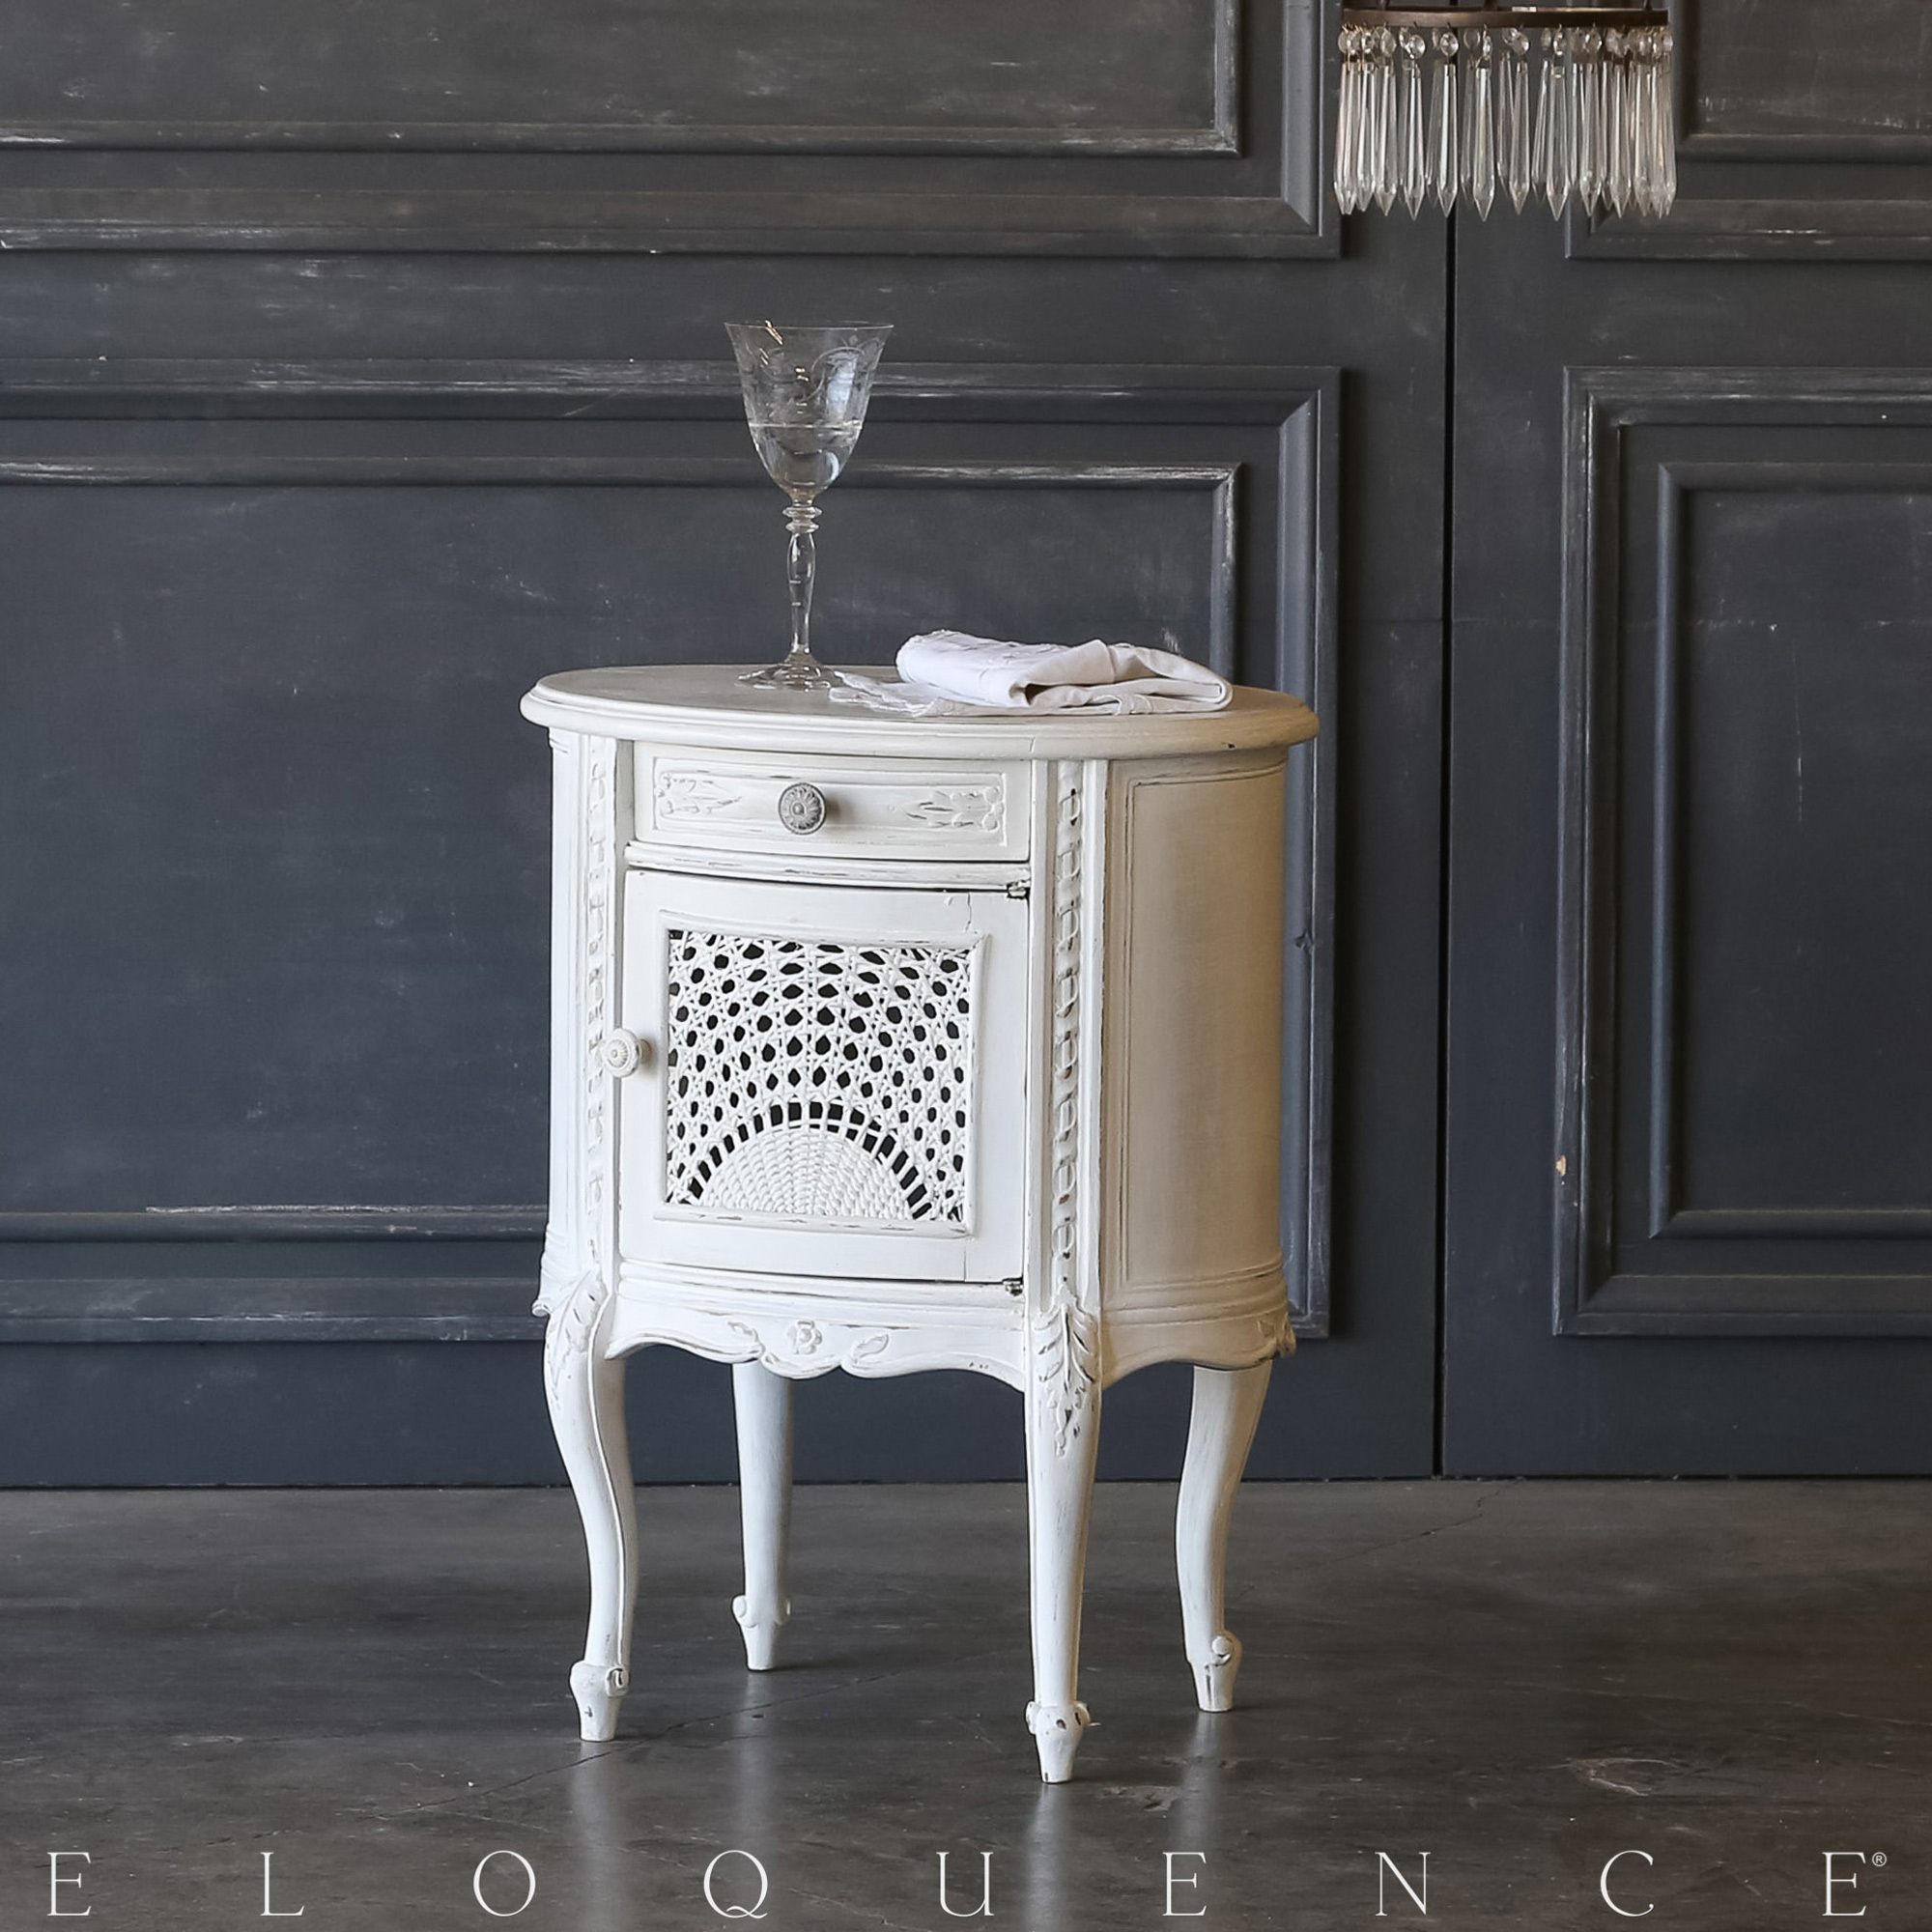 Eloquence® Single White Cane Vintage Nightstand:1940